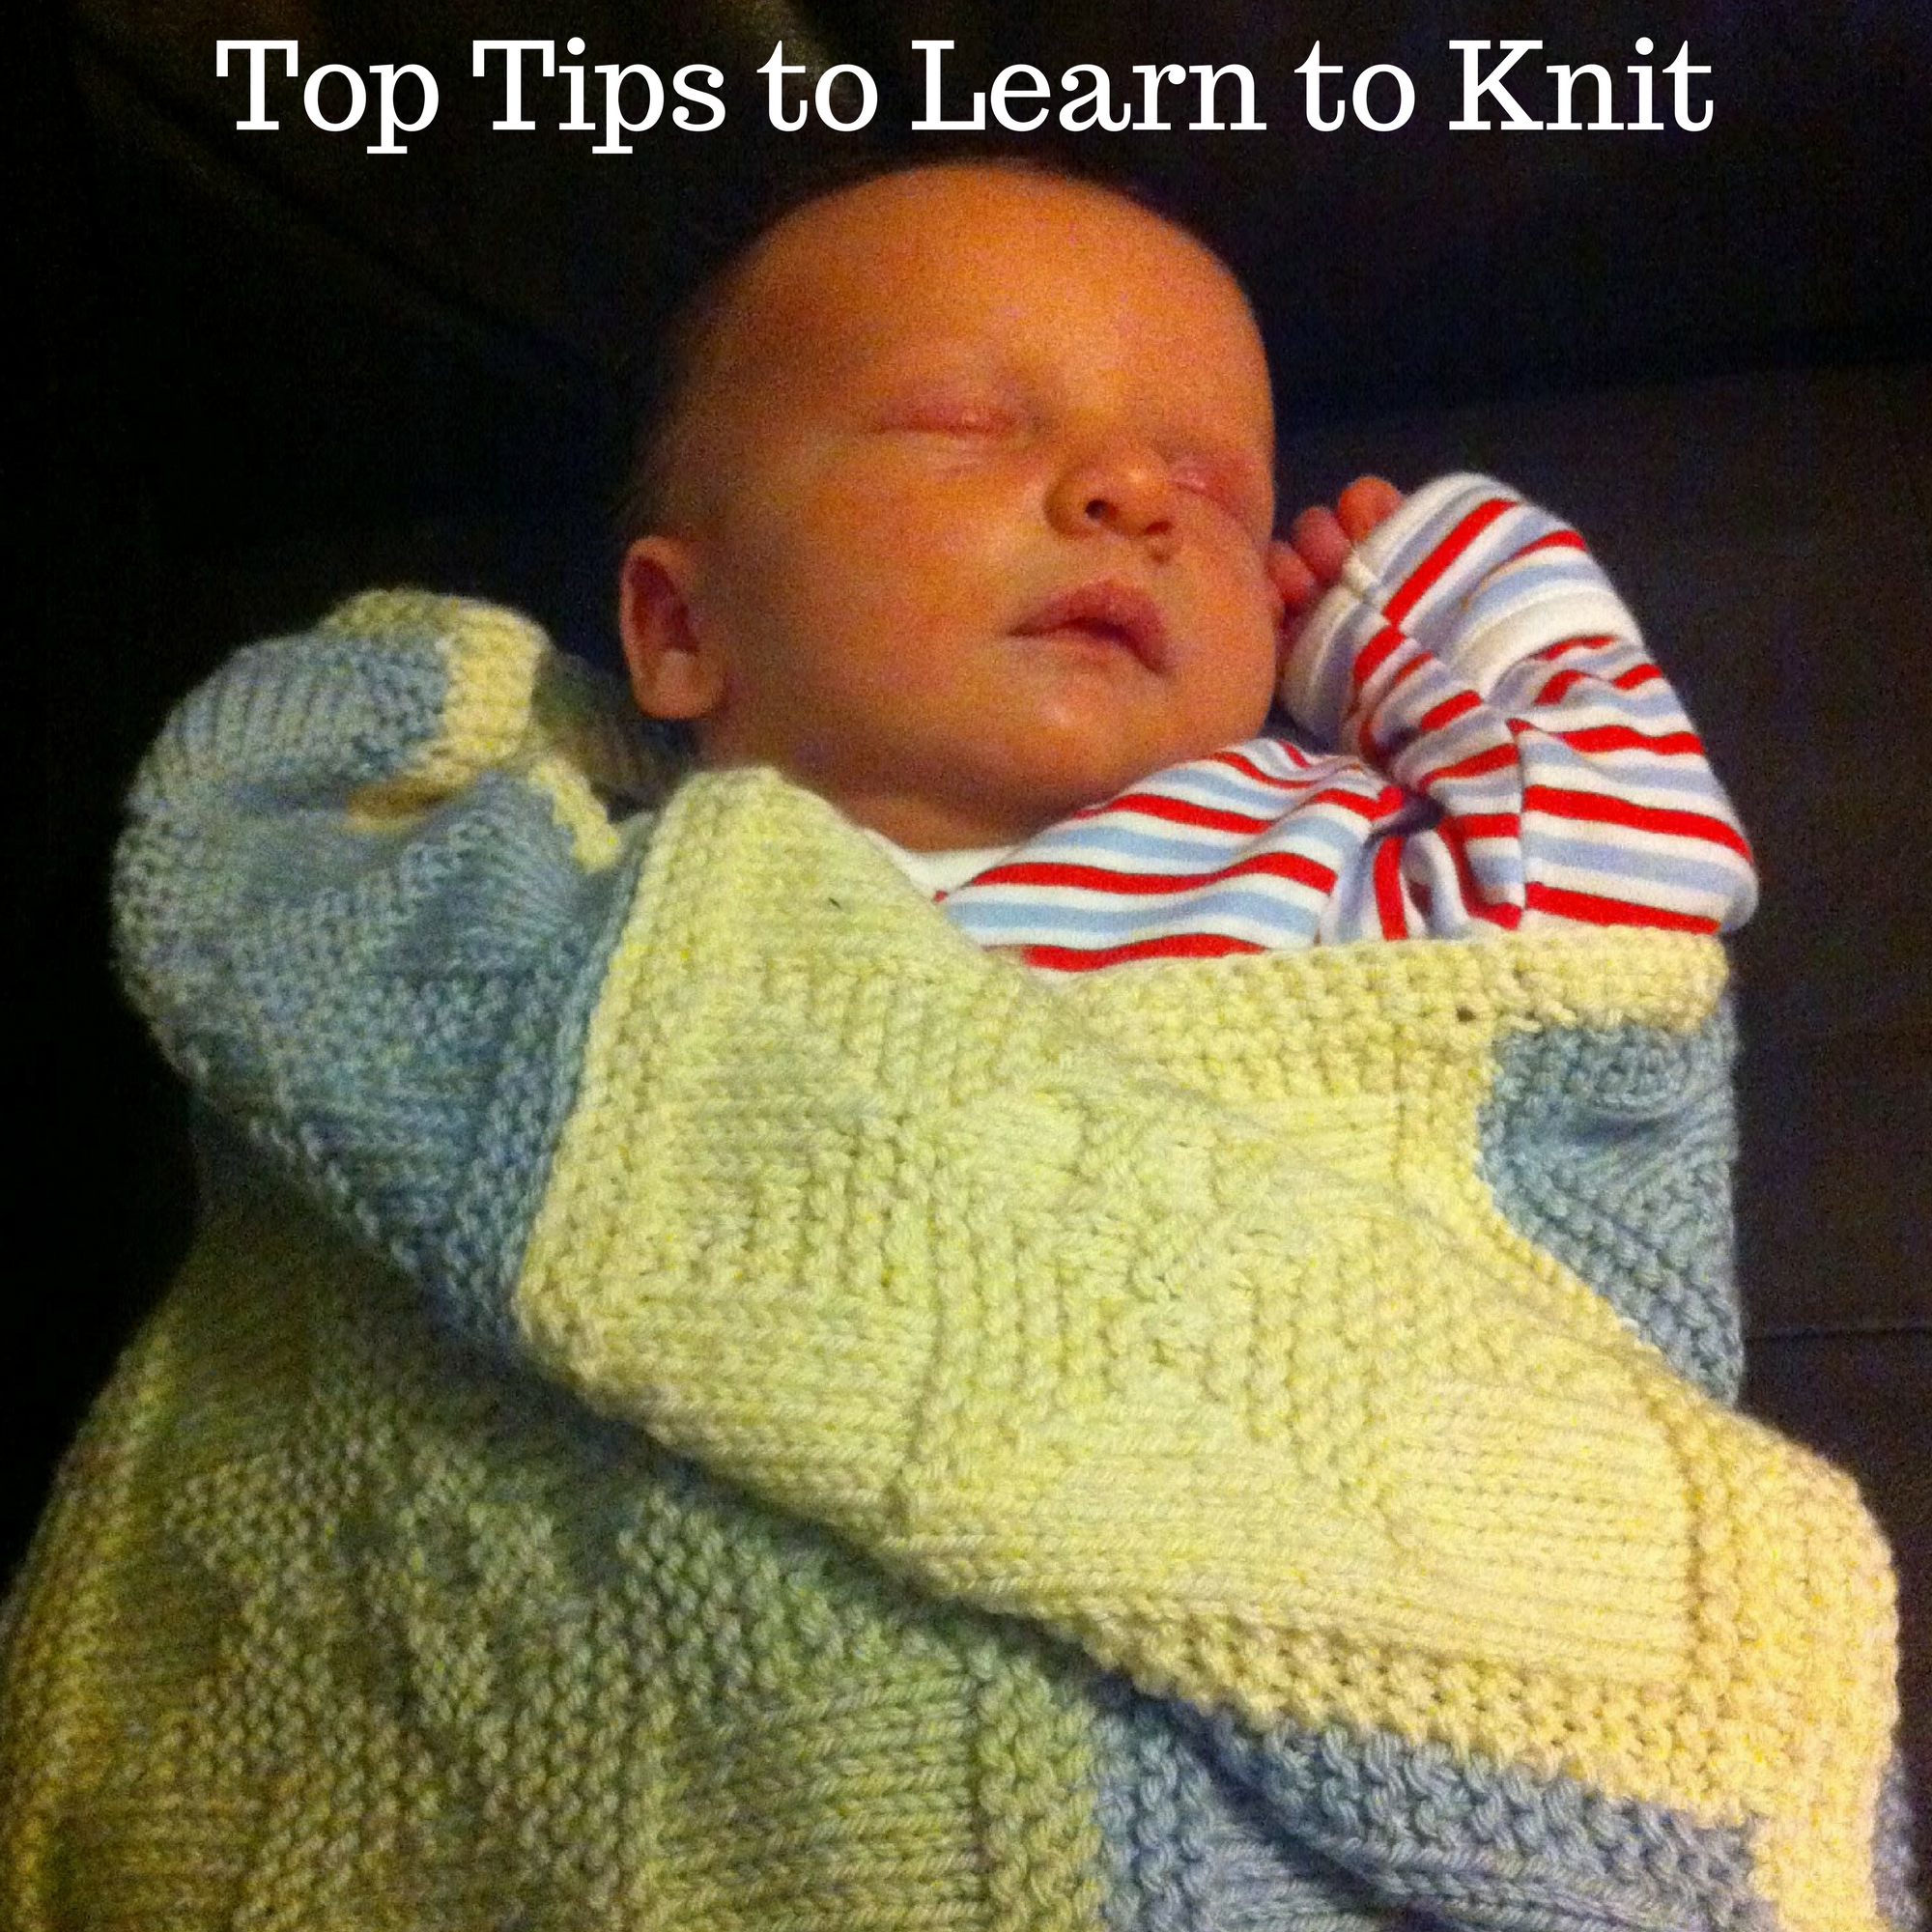 Top Tips to Learn to Knit